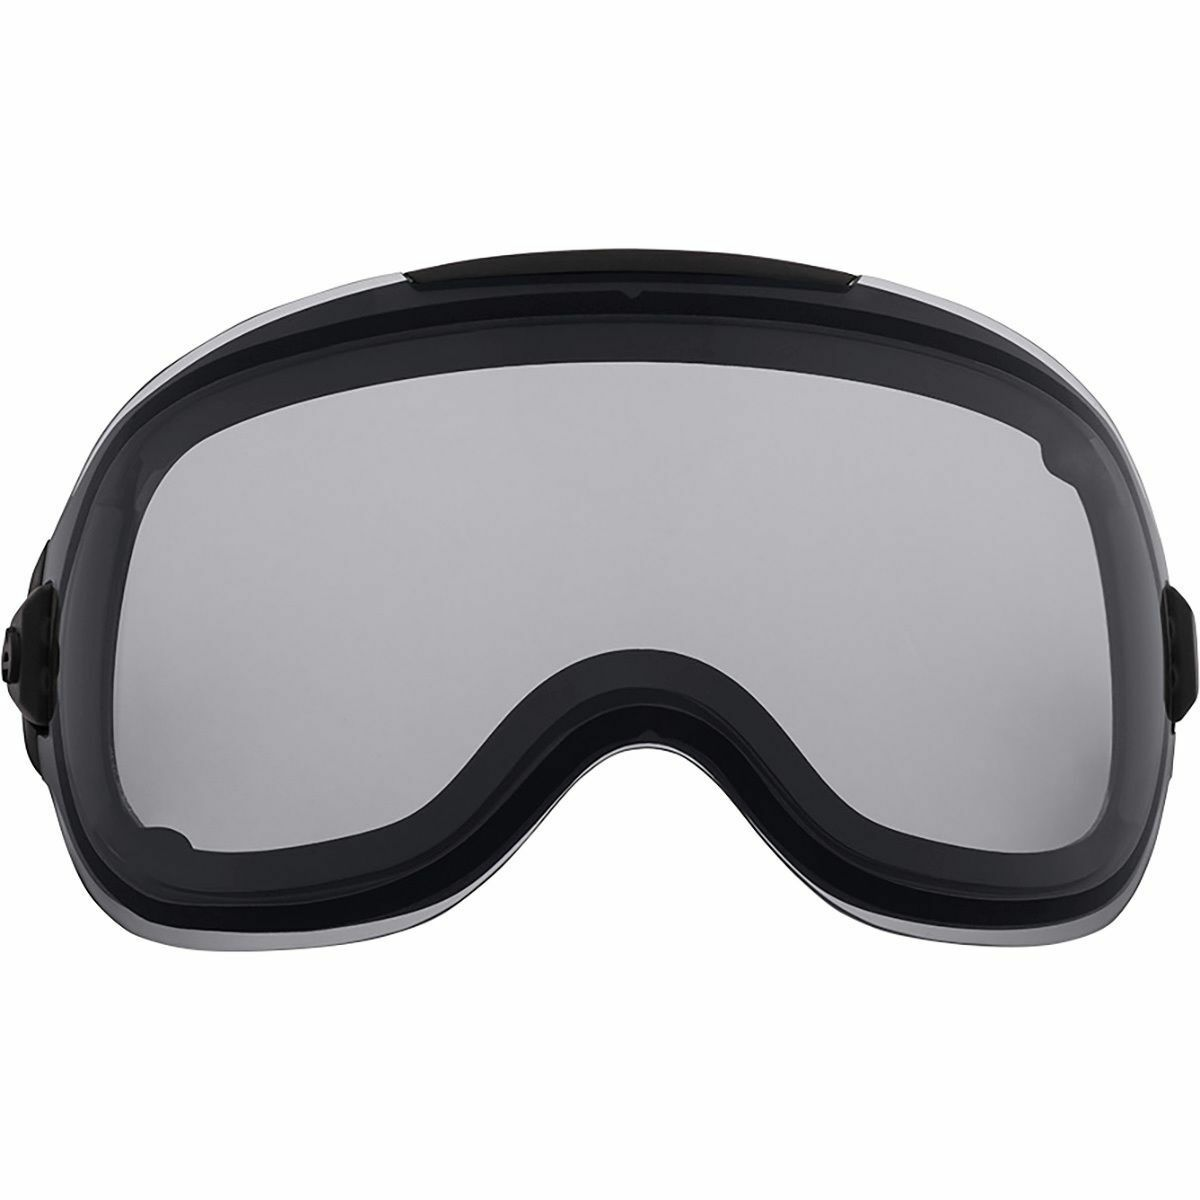 Abom One Goggles Replacement  Lens  2018 store